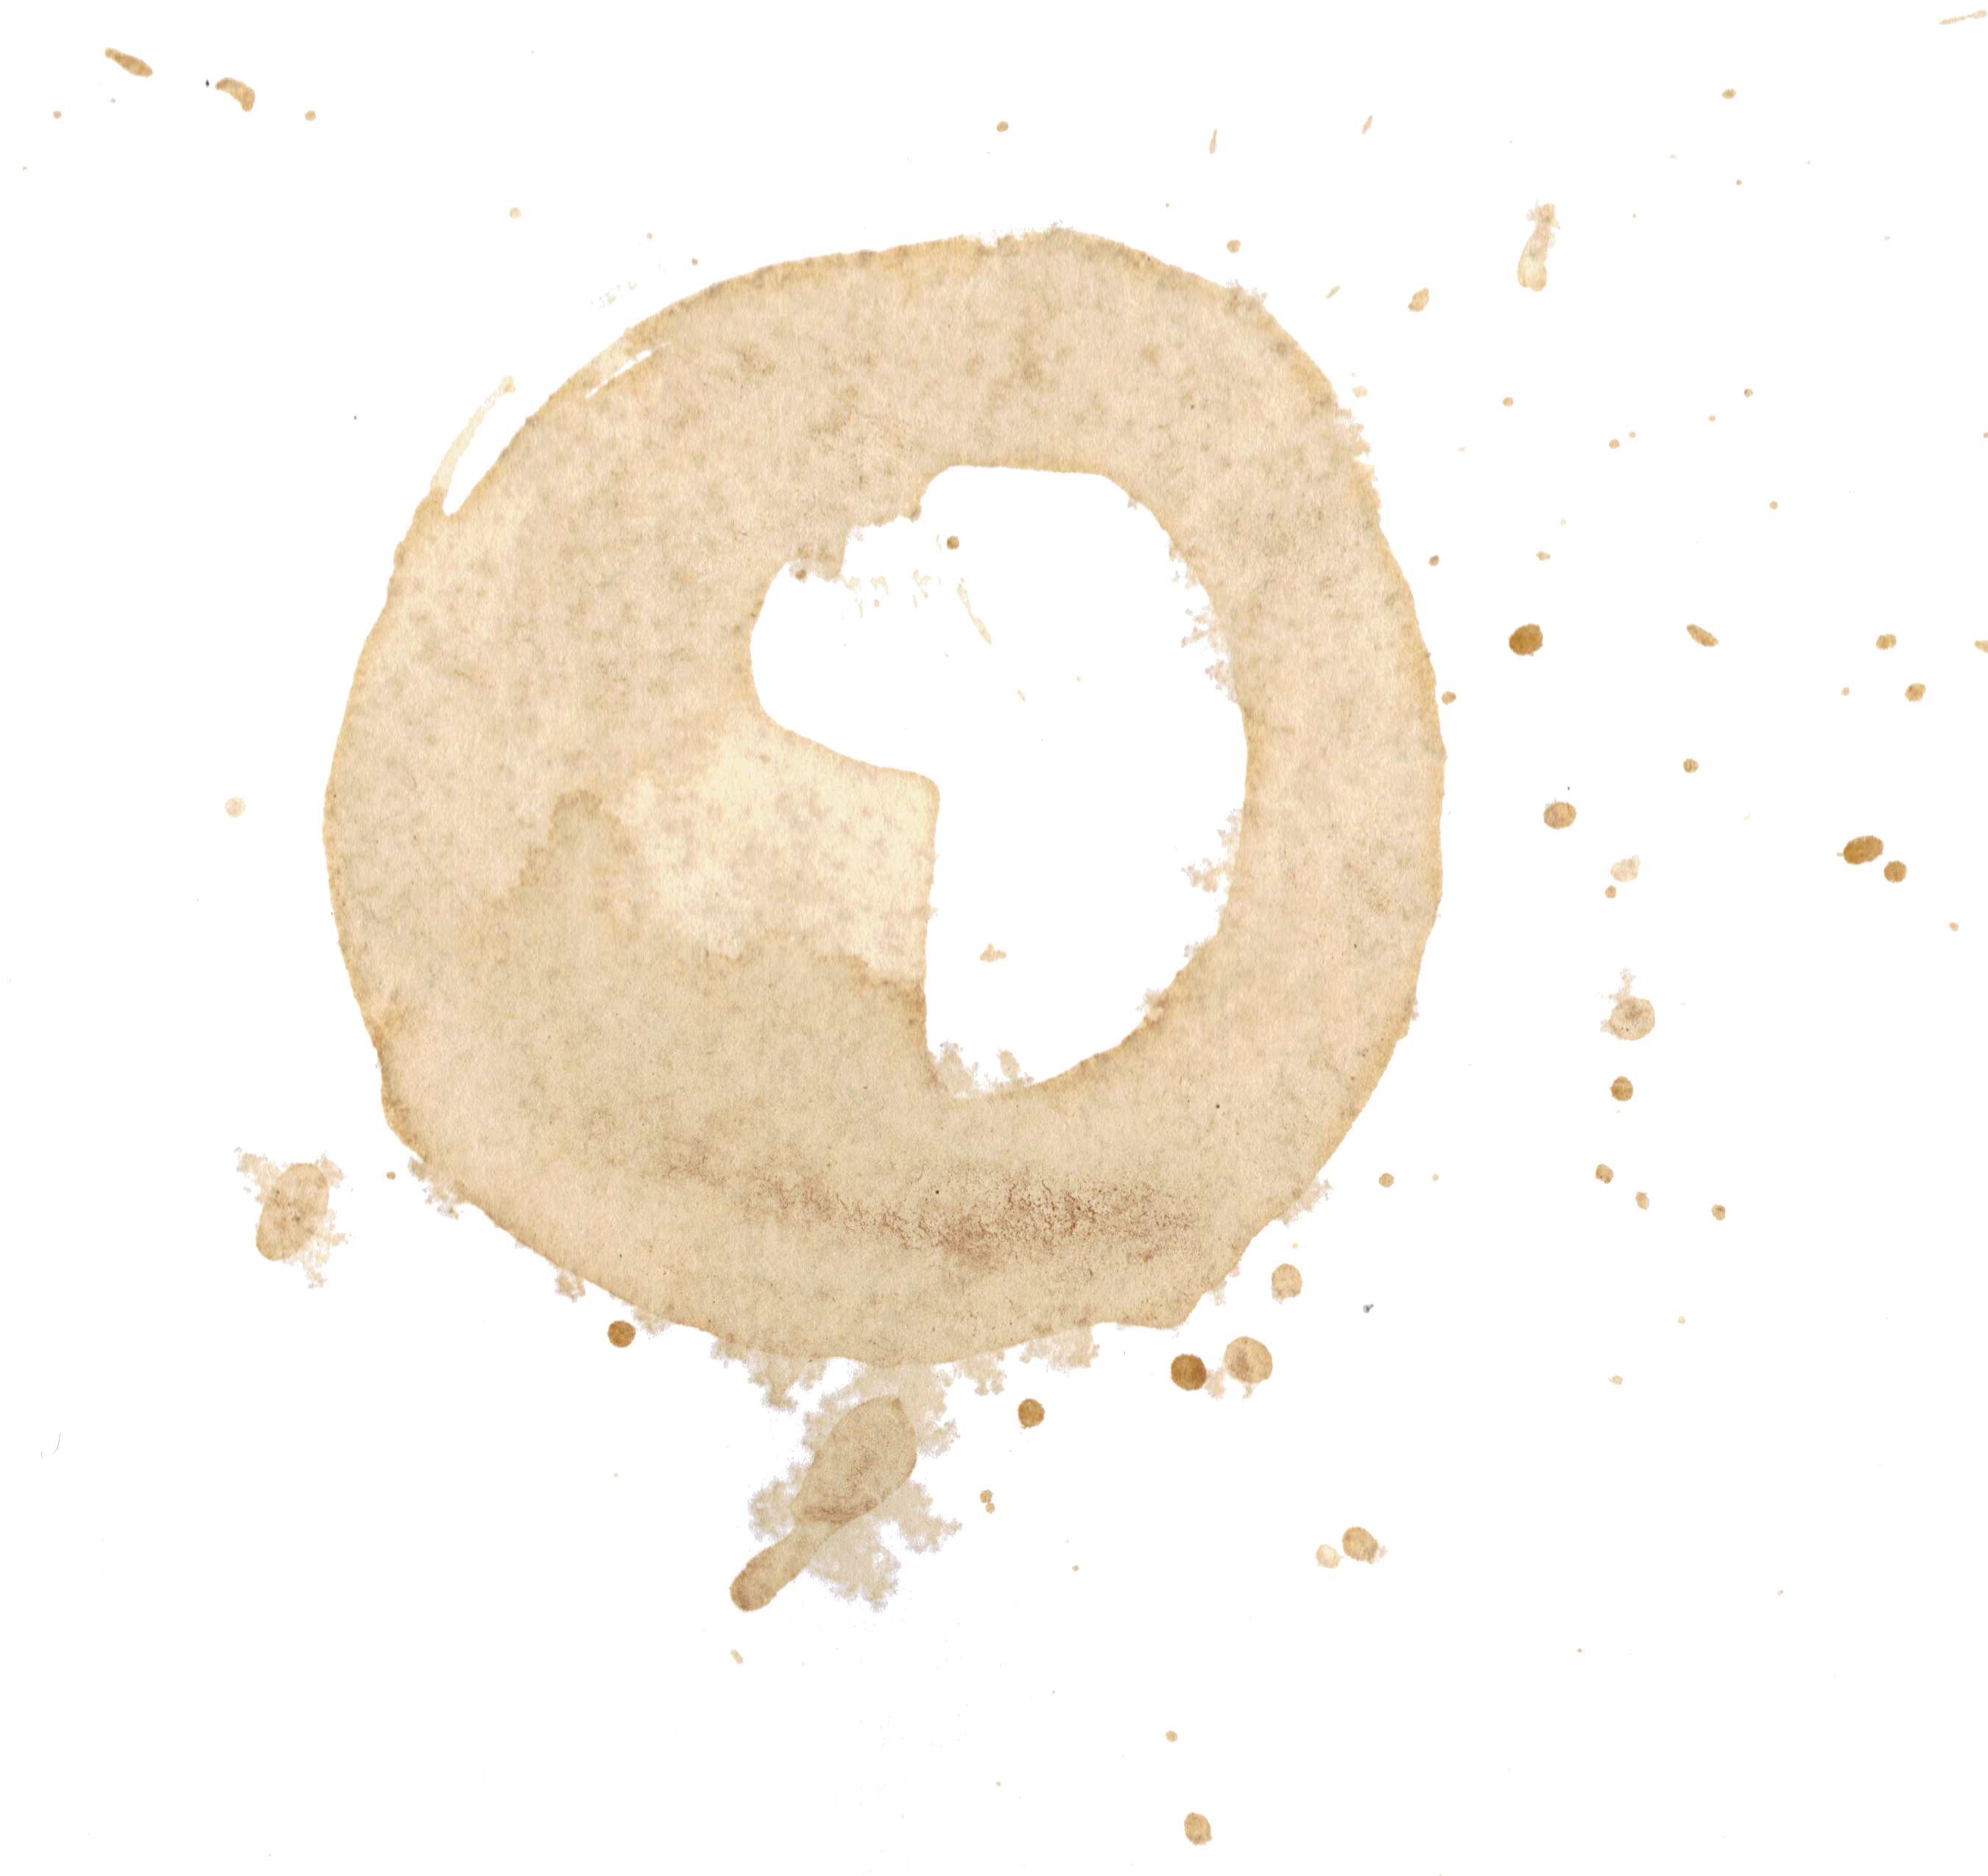 Stain png. Coffee image transparent